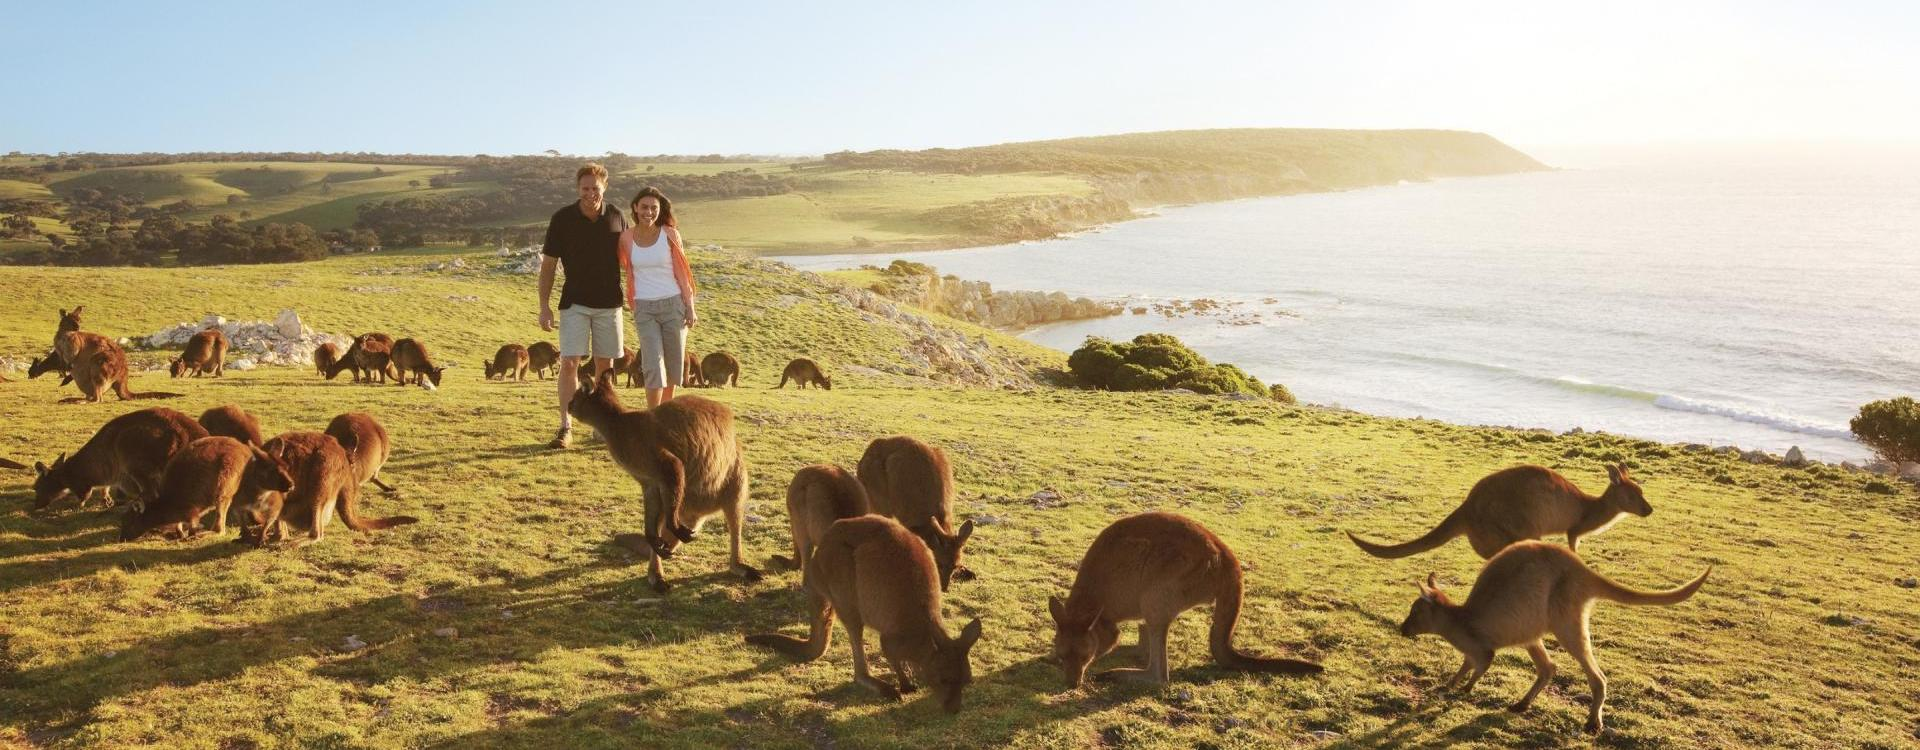 Australia Package Tours - For the best Australian Holiday